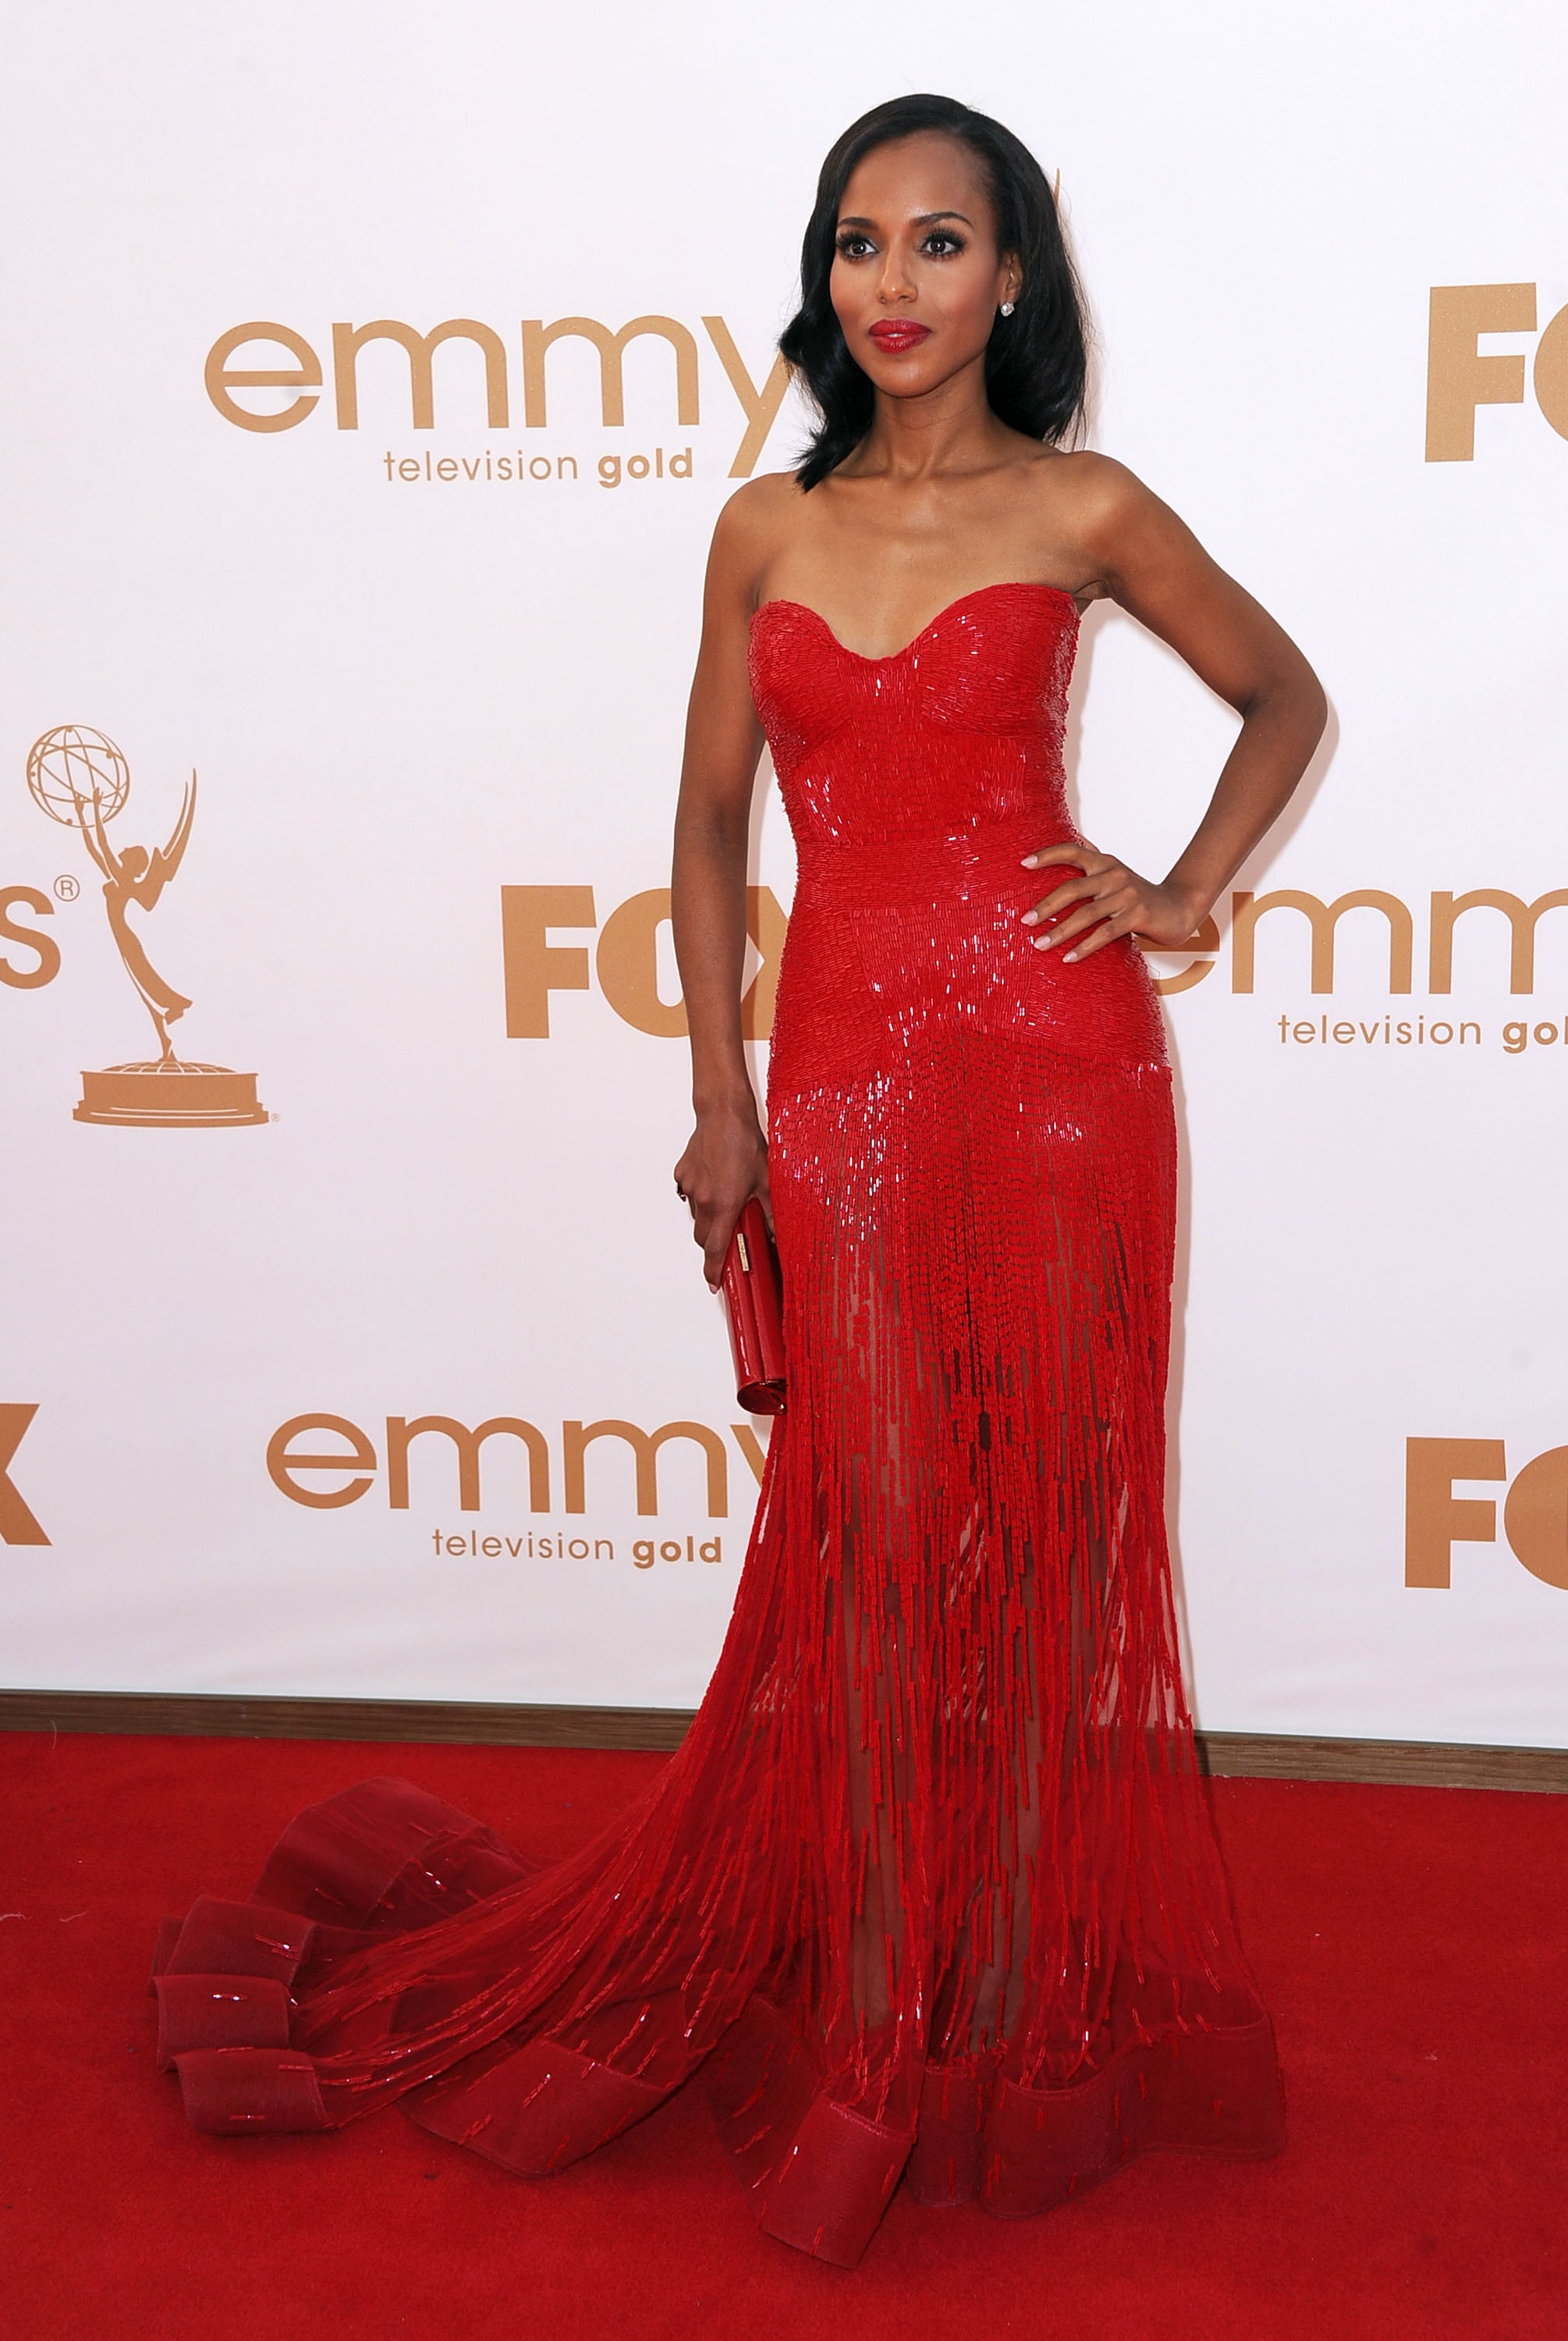 Kerry Washington in red at the Emmys.